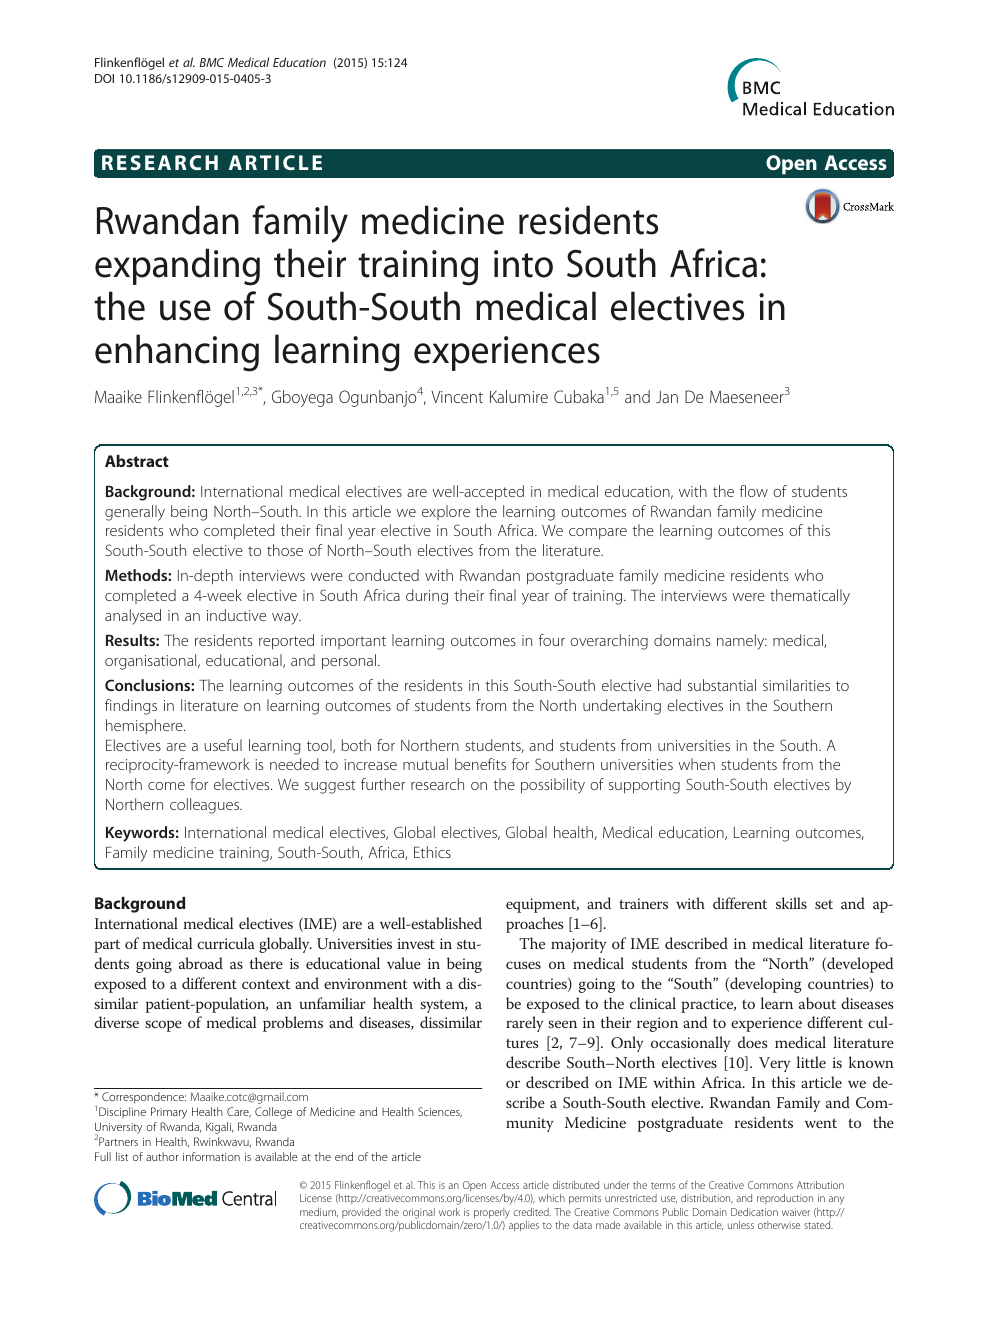 Rwandan family medicine residents expanding their training into